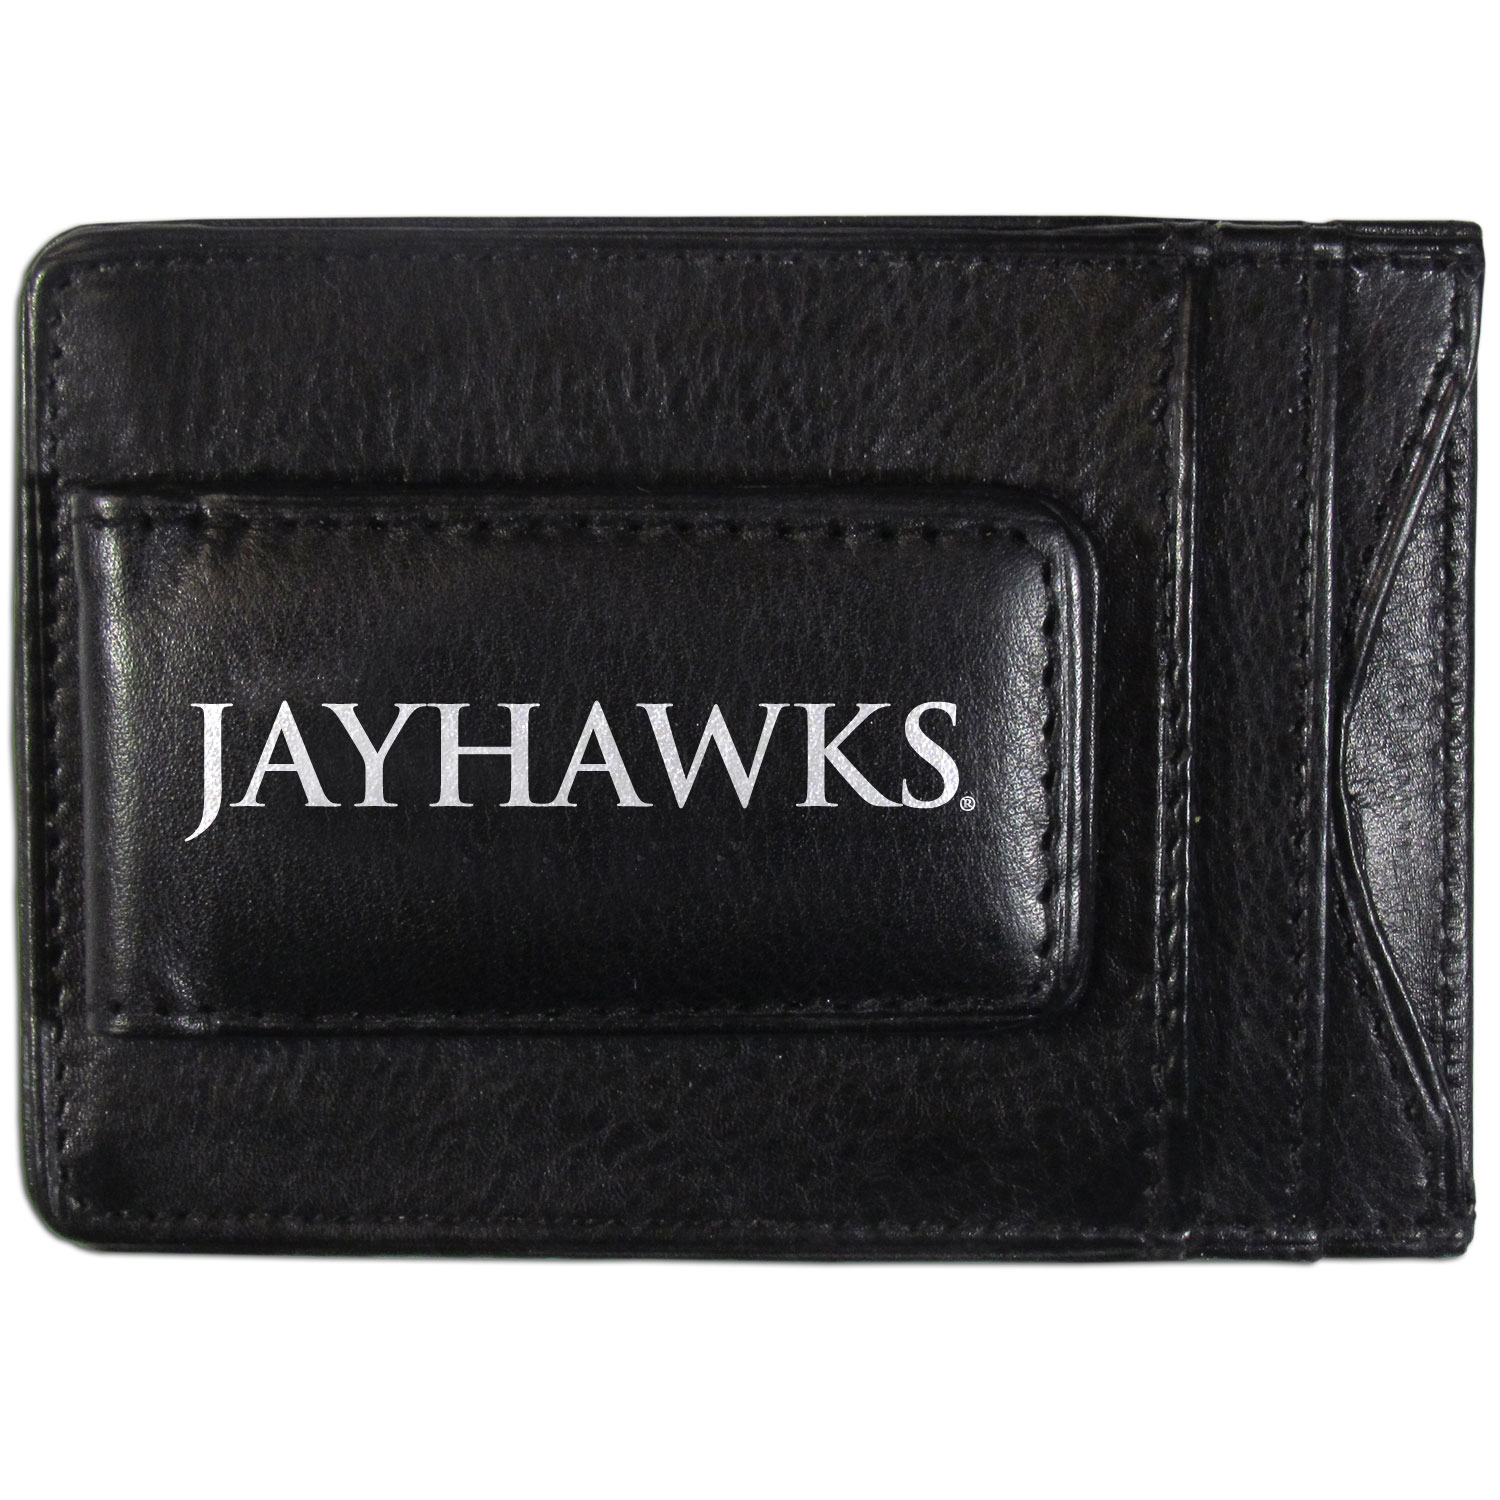 Kansas Jayhawks Logo Leather Cash and Cardholder - This super slim leather wallet lets you have all the benefits of a money clip while keeping the organization of a wallet. On one side of this front pocket wallet there is a strong, magnetic money clip to keep your cash easily accessible and the?Kansas Jayhawks team logo on the front. The versatile men's accessory is a perfect addition to your fan apparel.